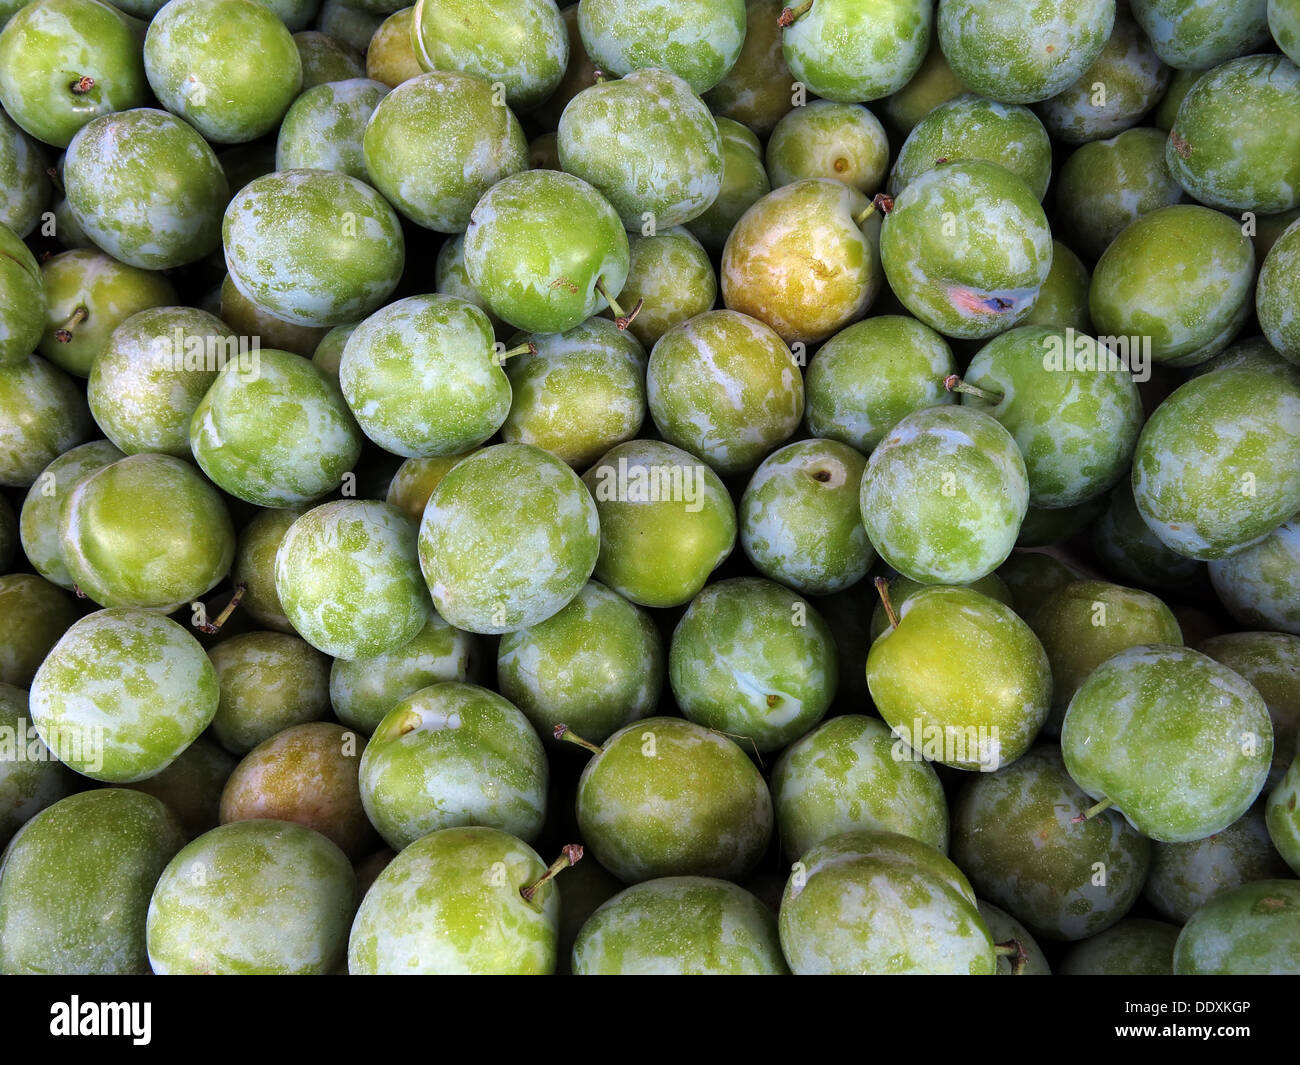 Organic Green greengages fruit one of your five a day - Stock Image